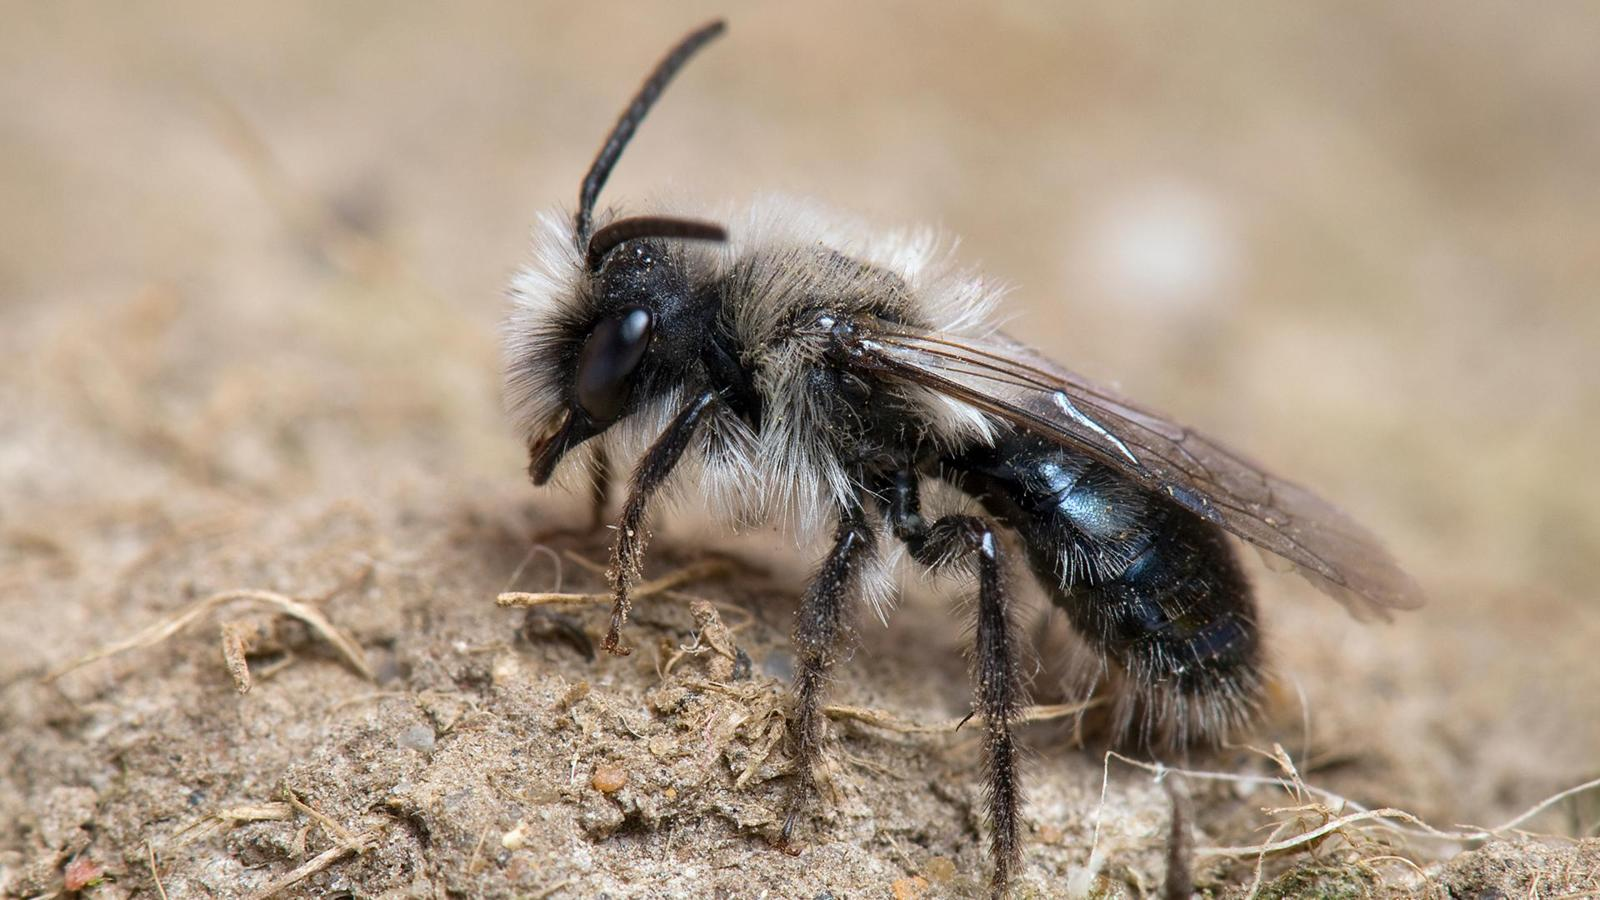 Ashy mining bees (Andrena cineraria) are common all over Europe (Credit: Andy Sands/NPL)